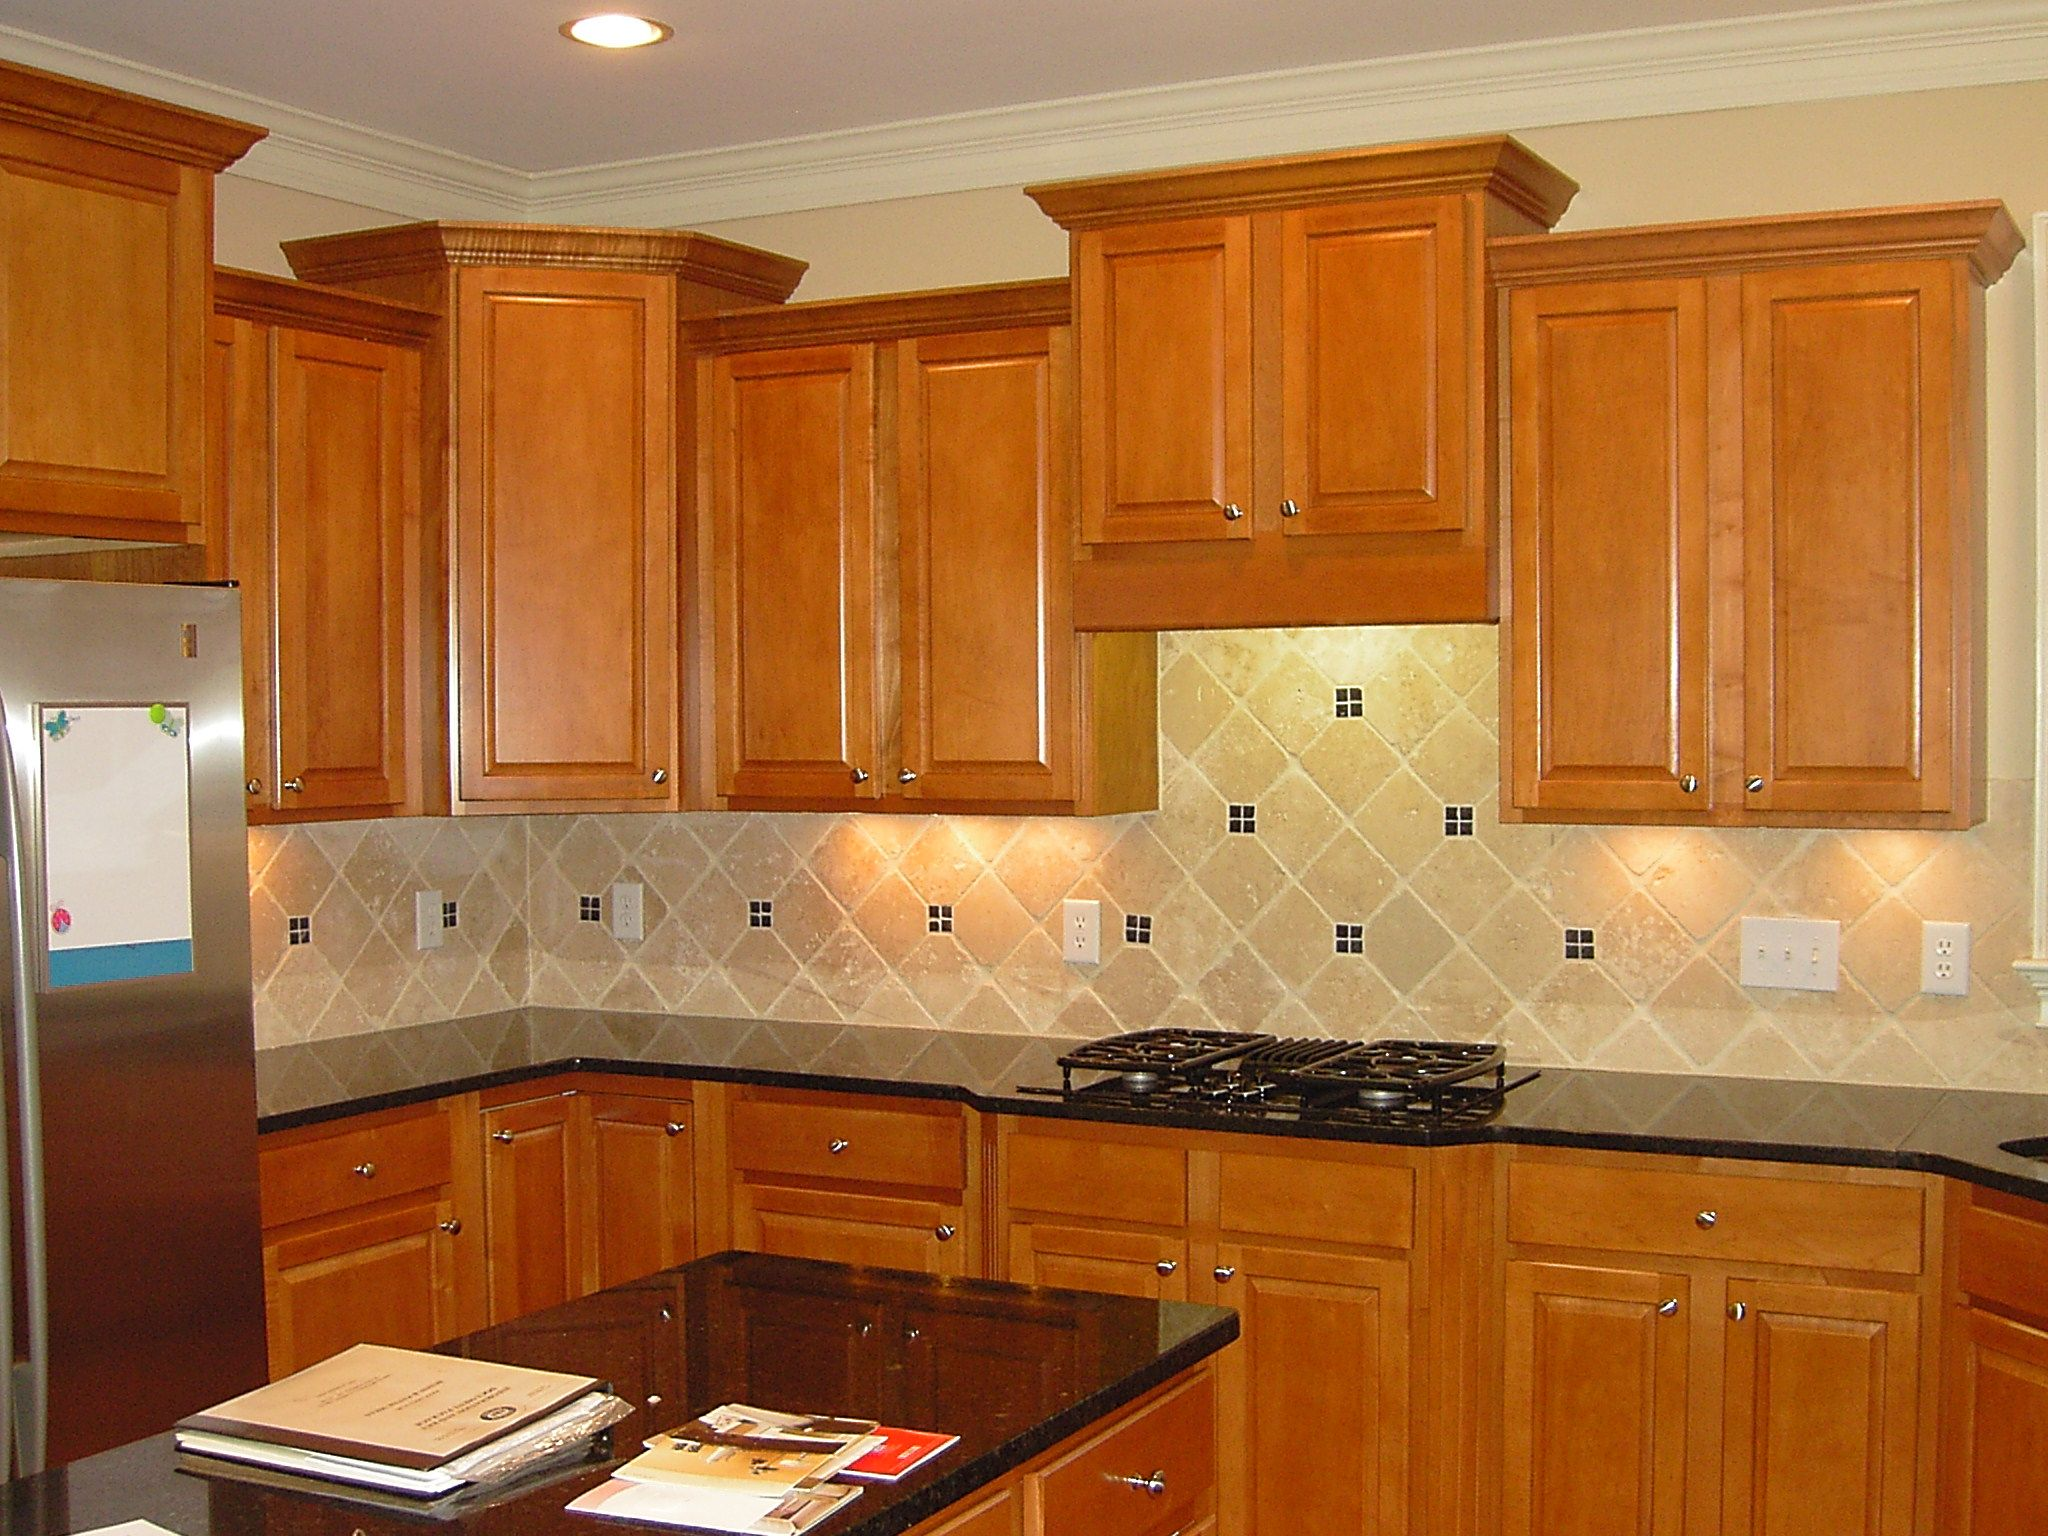 Granite With Cream Cabinets Honey Oak Kitchen Cabinets With Black Countertops White Cabinets